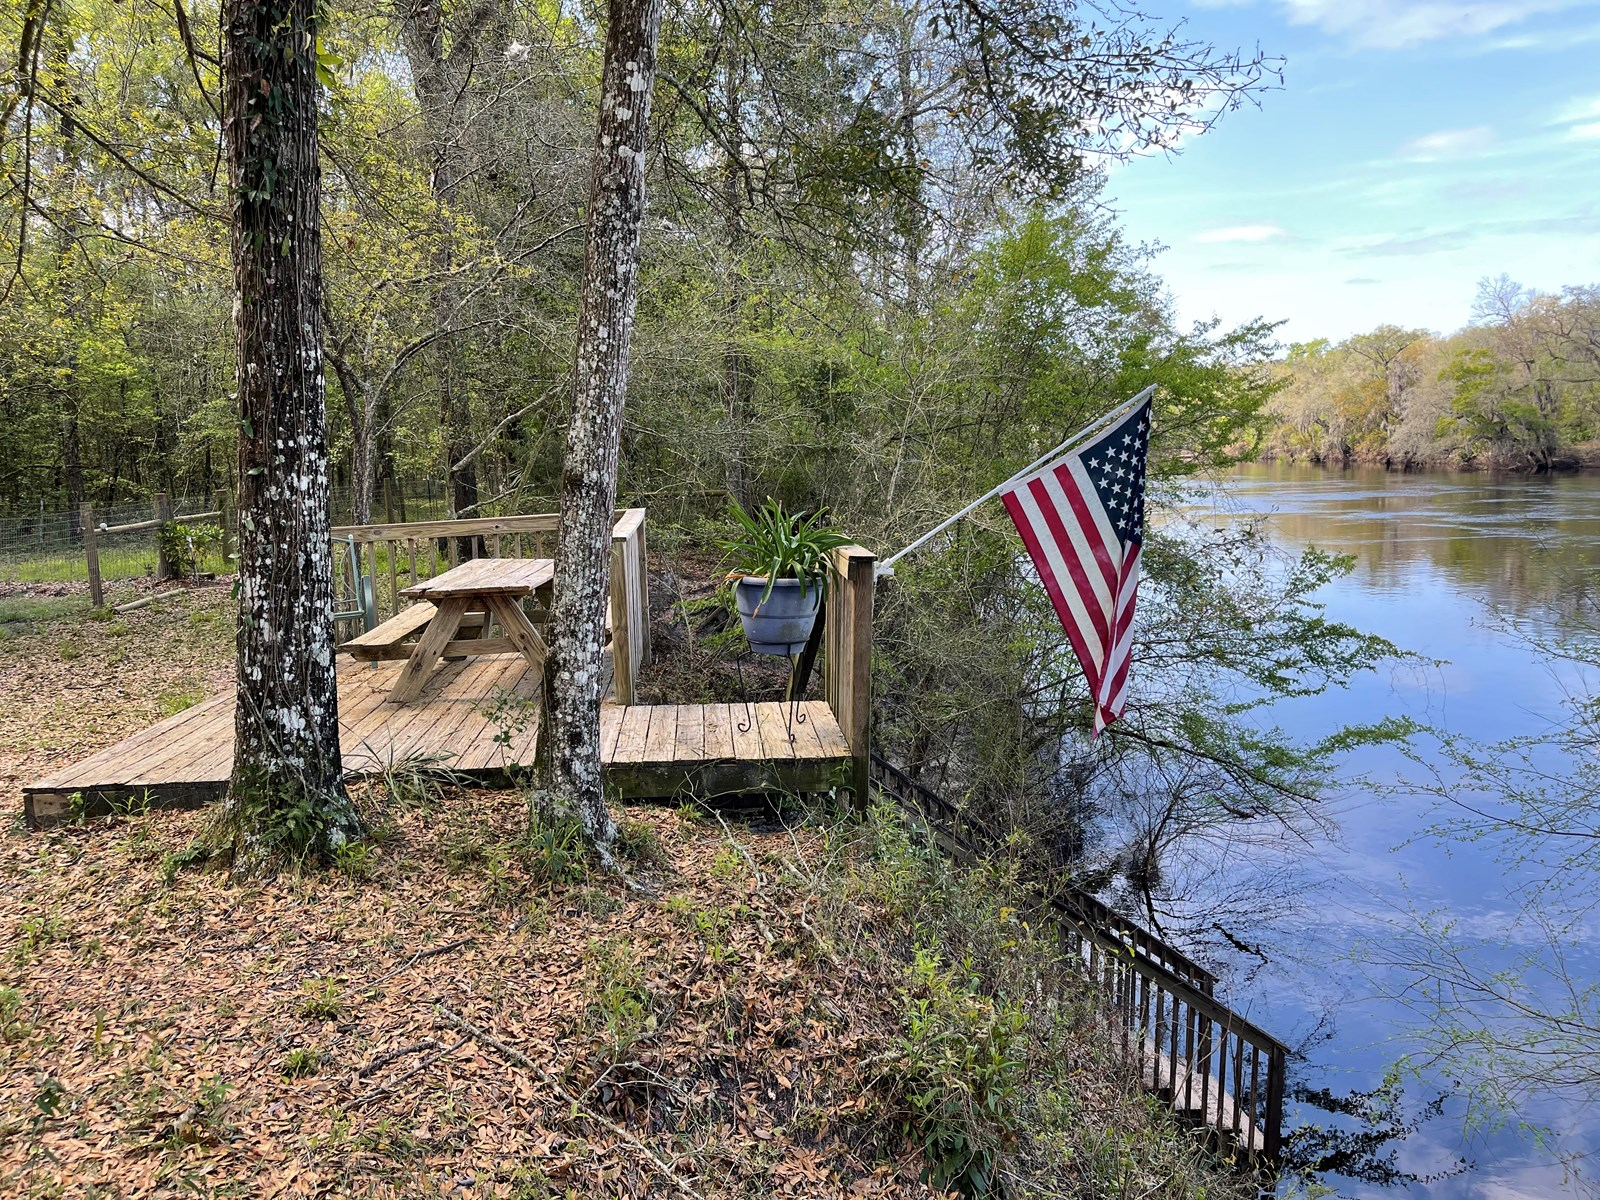 RIVER FRONT LOT FOR SALE ON SUWANNEE RIVER